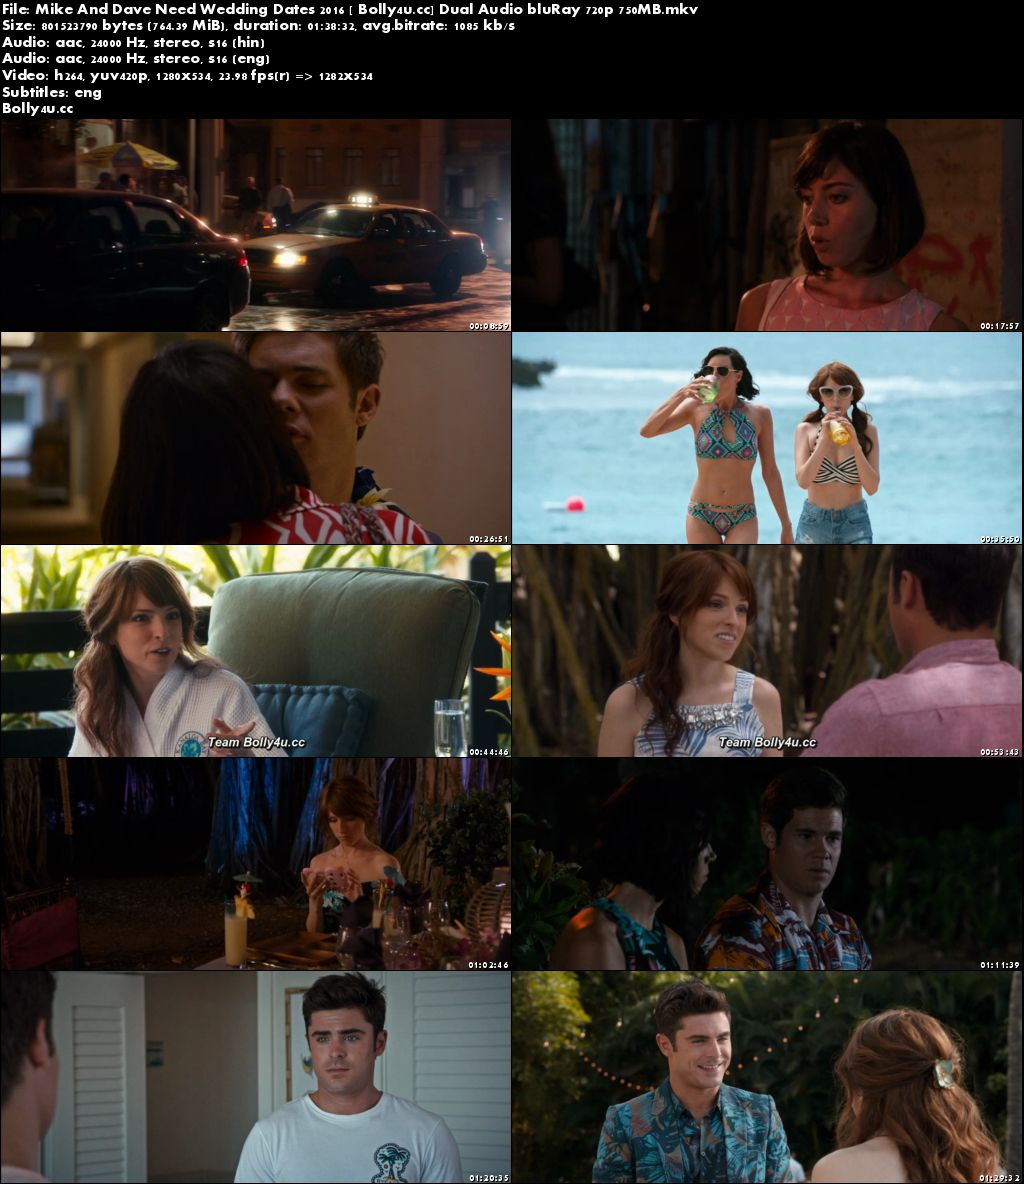 Mike And Dave Need Wedding Dates 2016 BRRip 750MB Hindi Dual Audio 720p Download